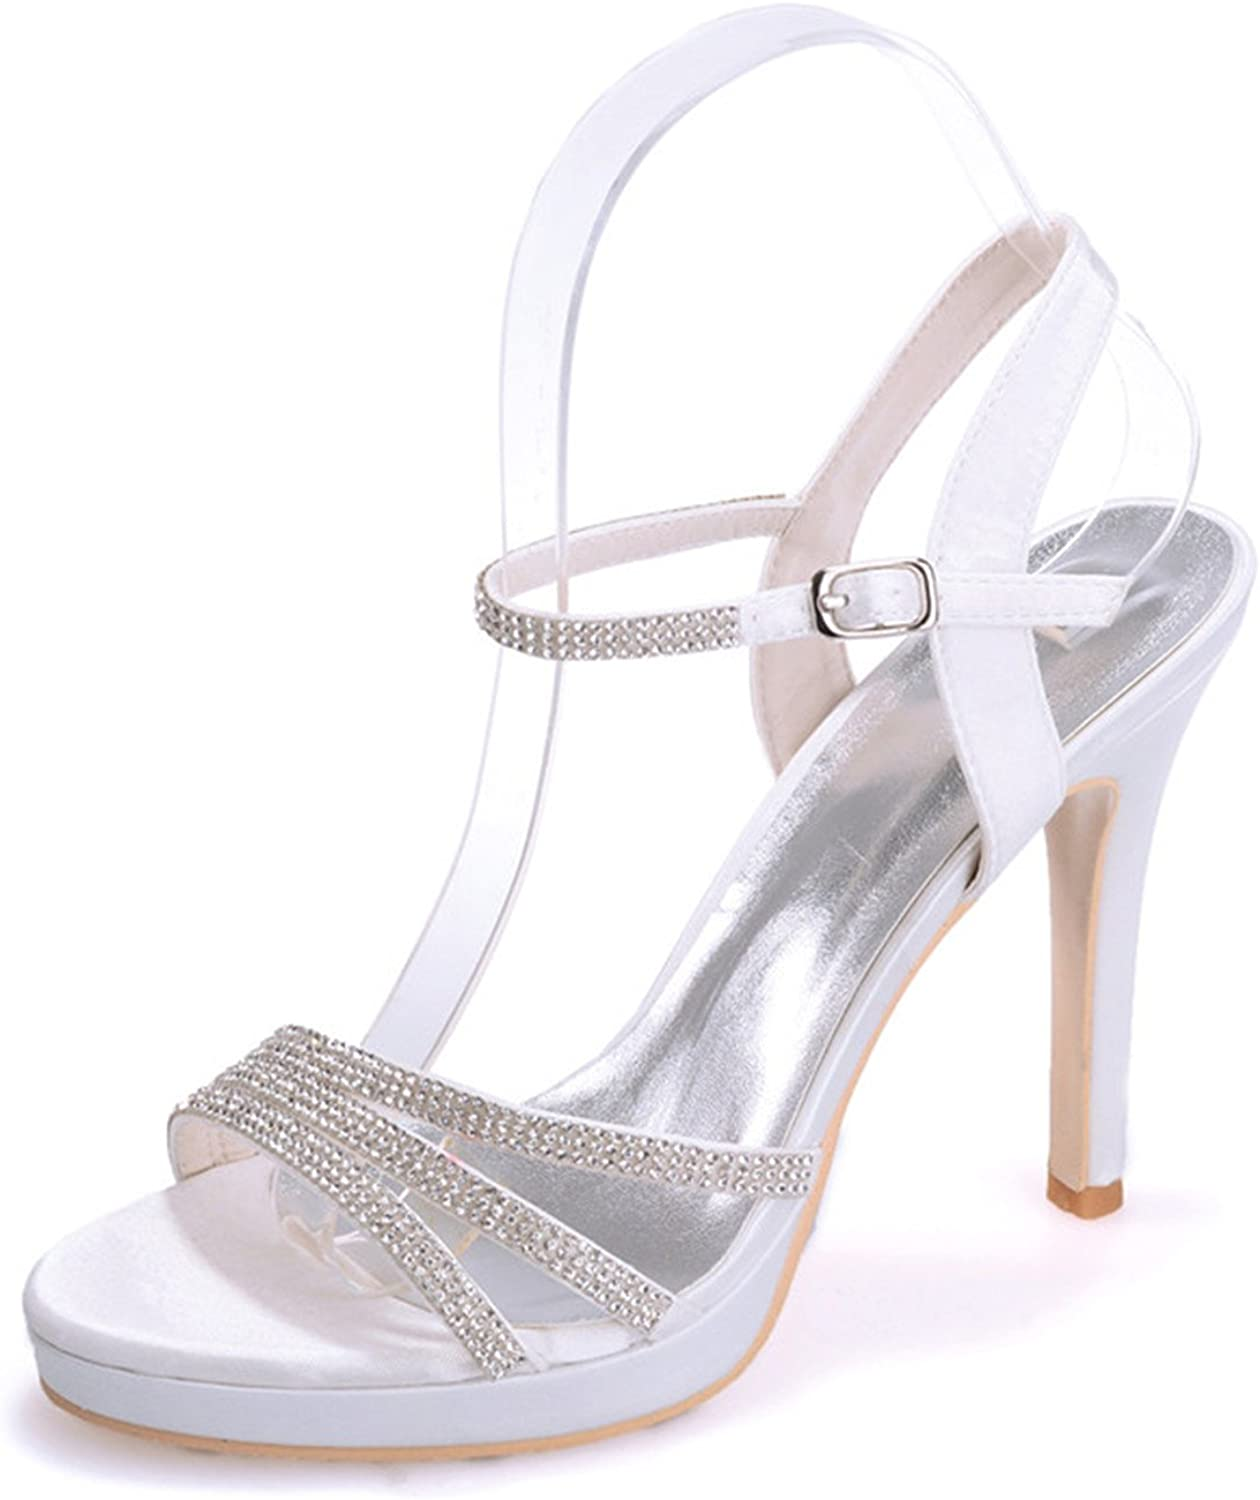 Fanciest Women's Bridal Wedding Party Evening Sandals Beaded Open-Toe High Heel Pump shoes 5915-16